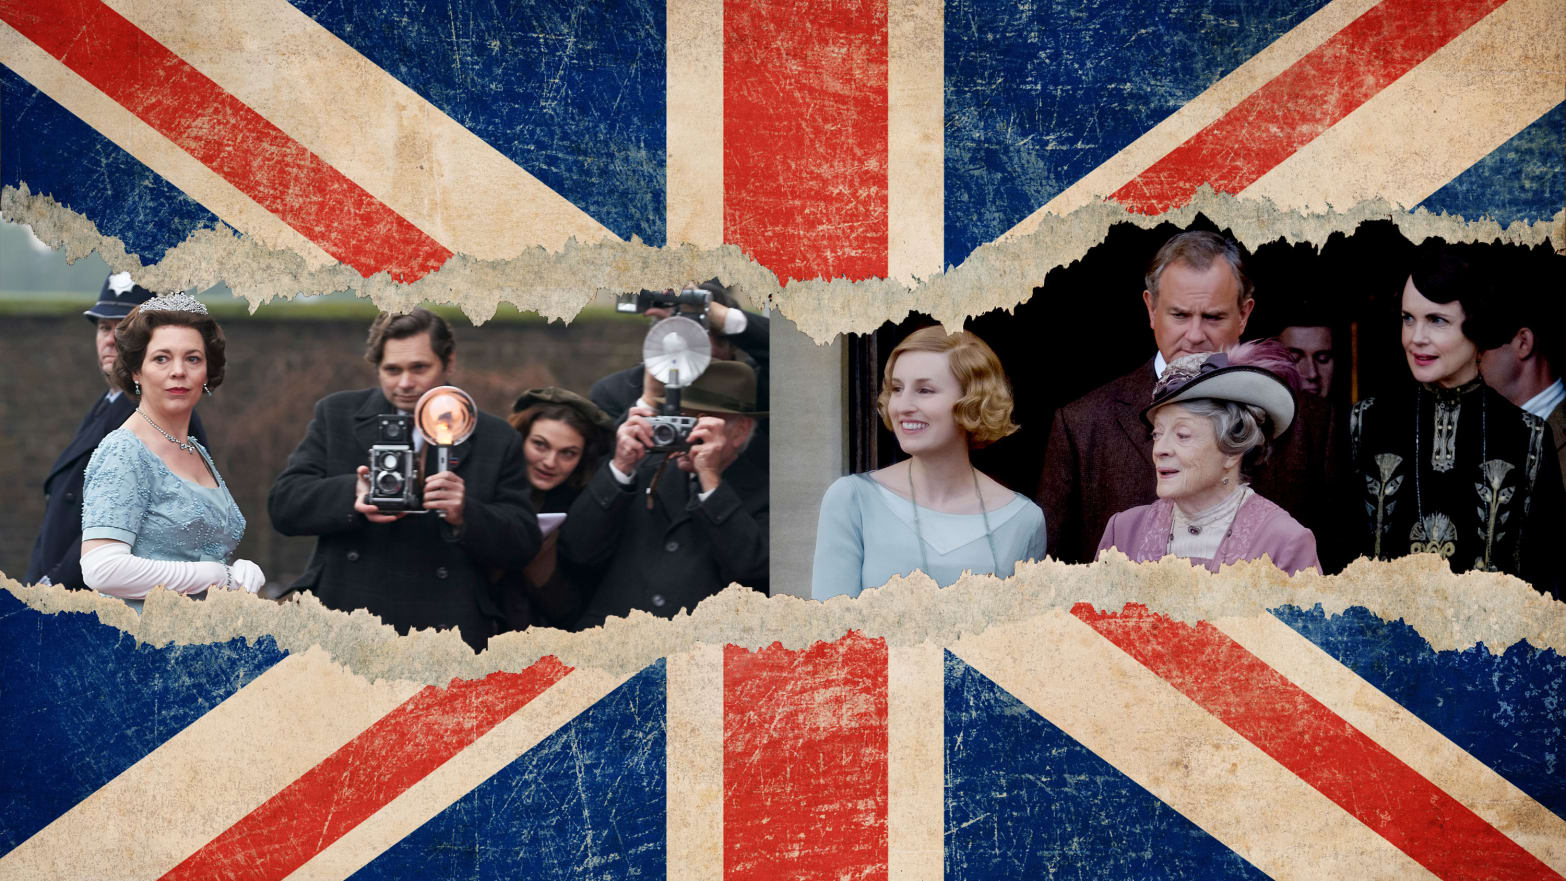 'Downton Abbey' and 'The Crown' Sell The Same B.S. as Brexit